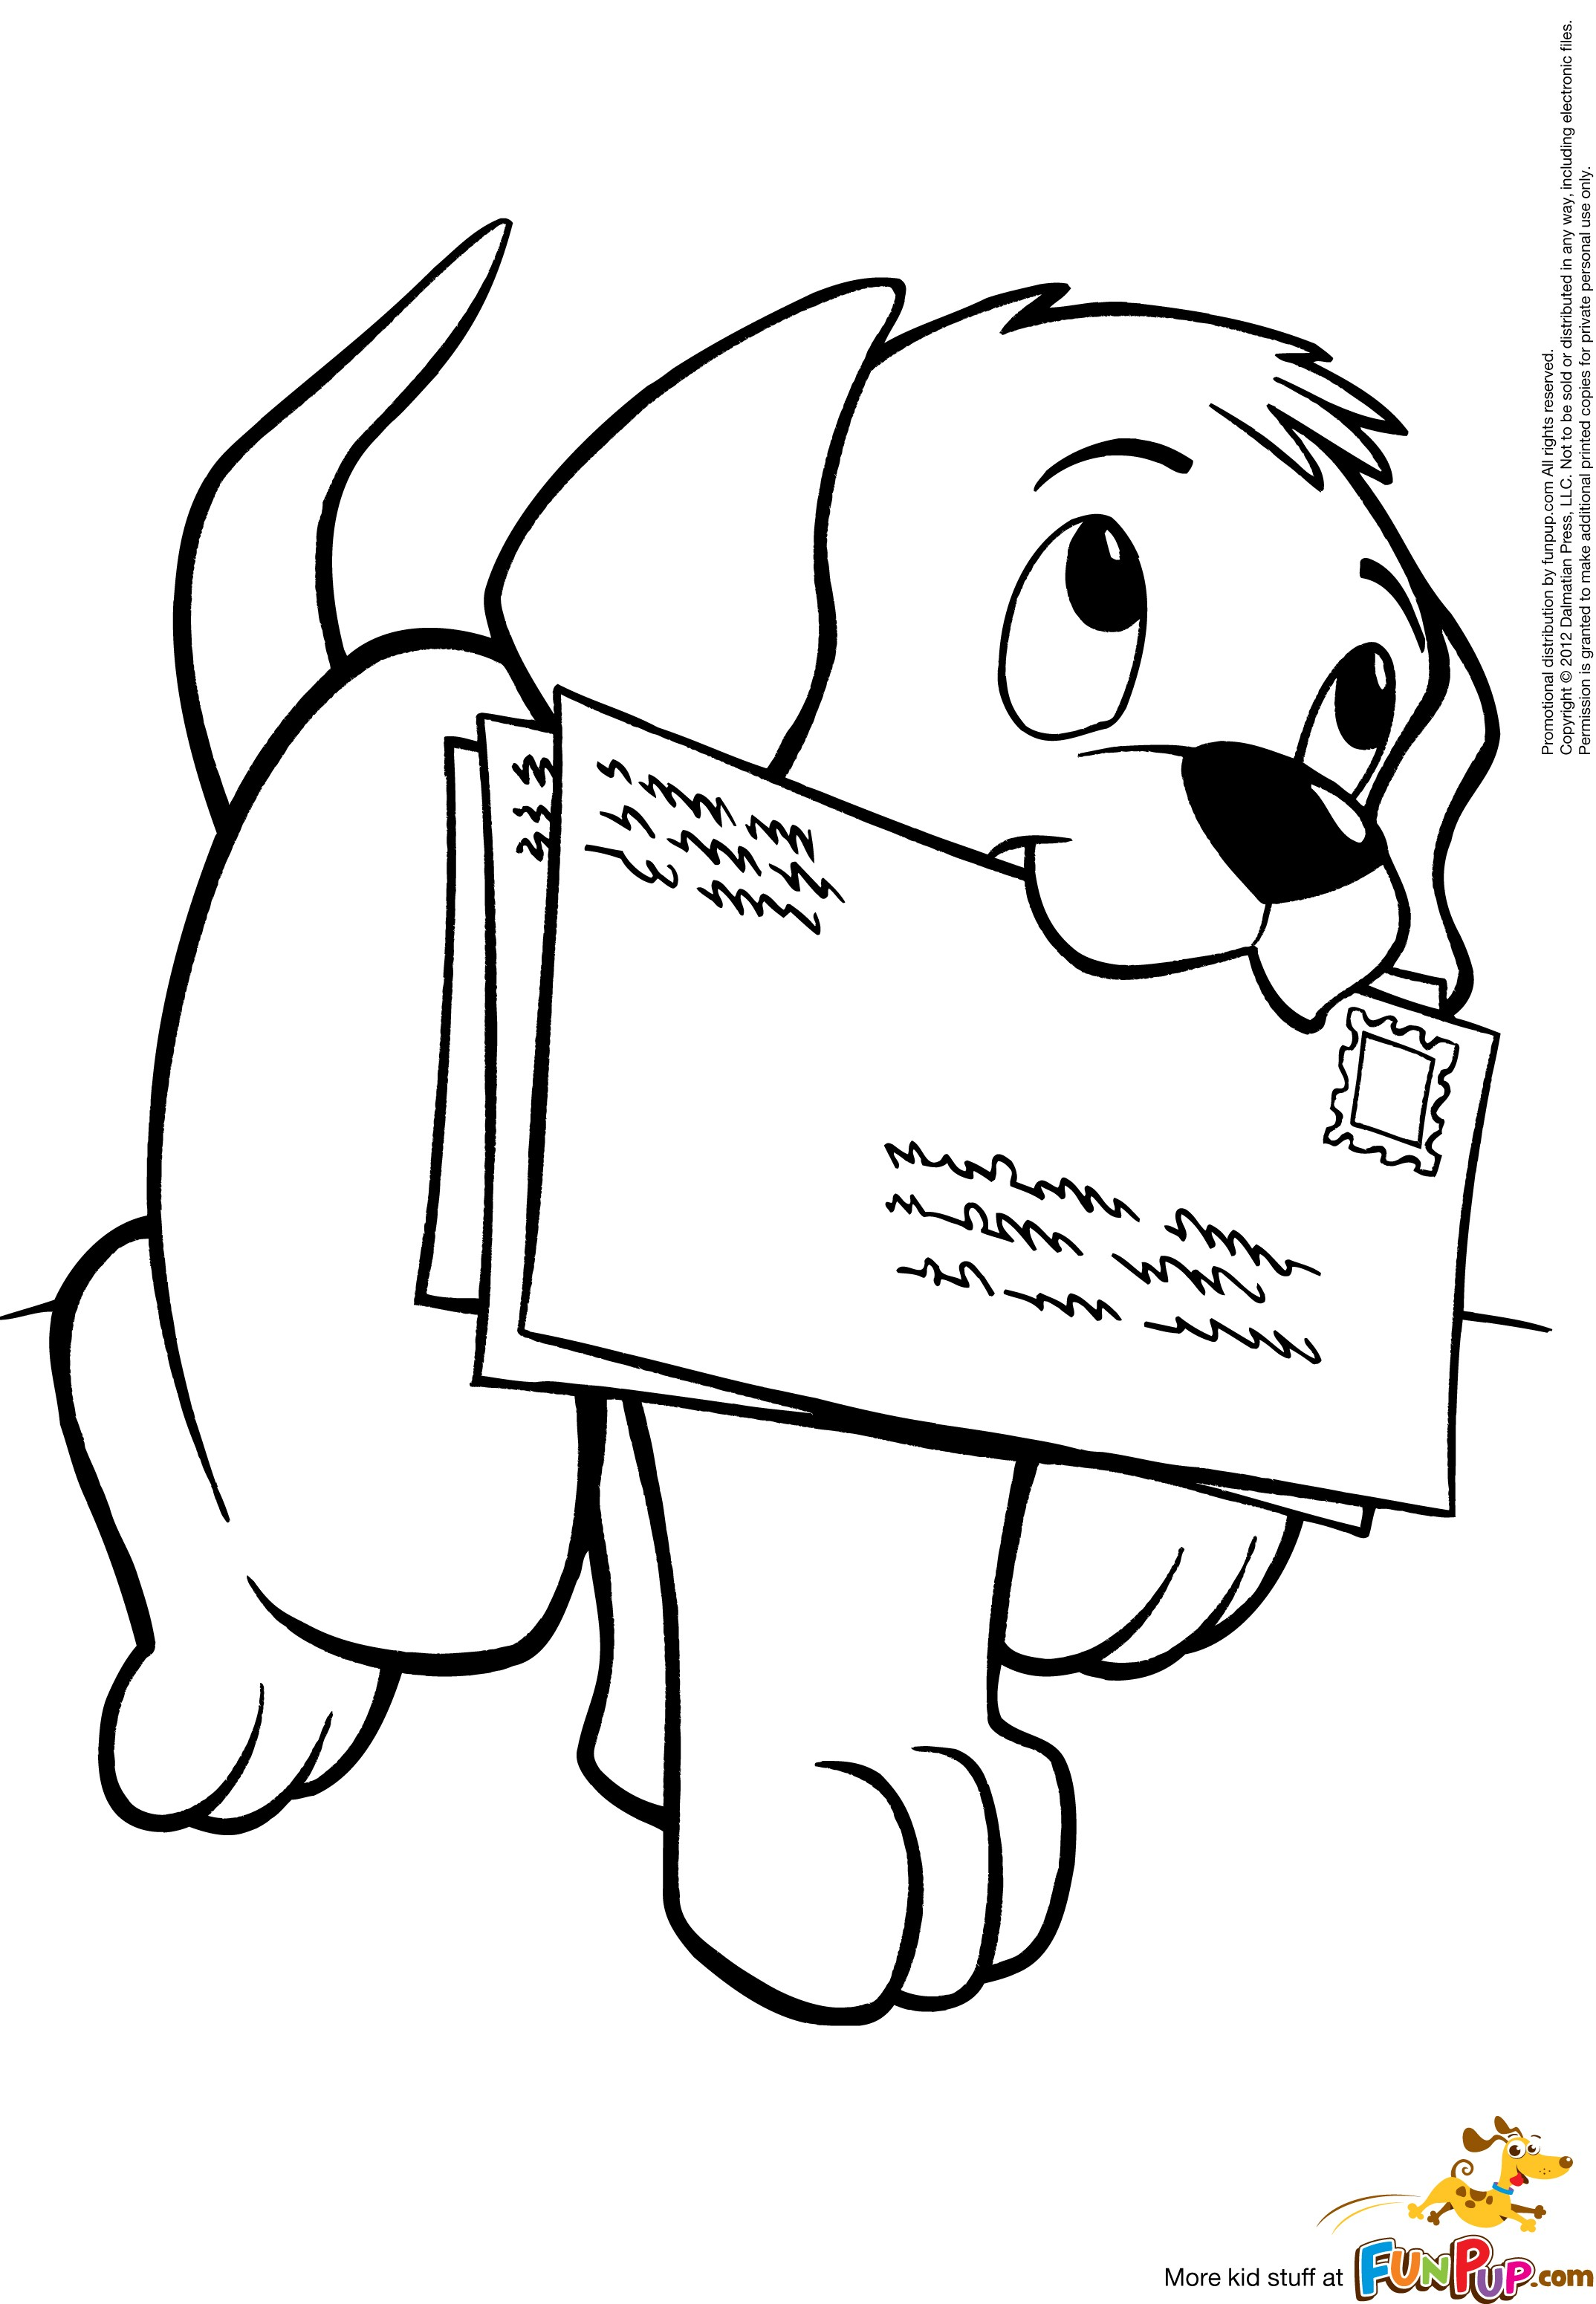 2148x3101 free printable coloring pages printables pinterest free - Colouring Pages For Printing